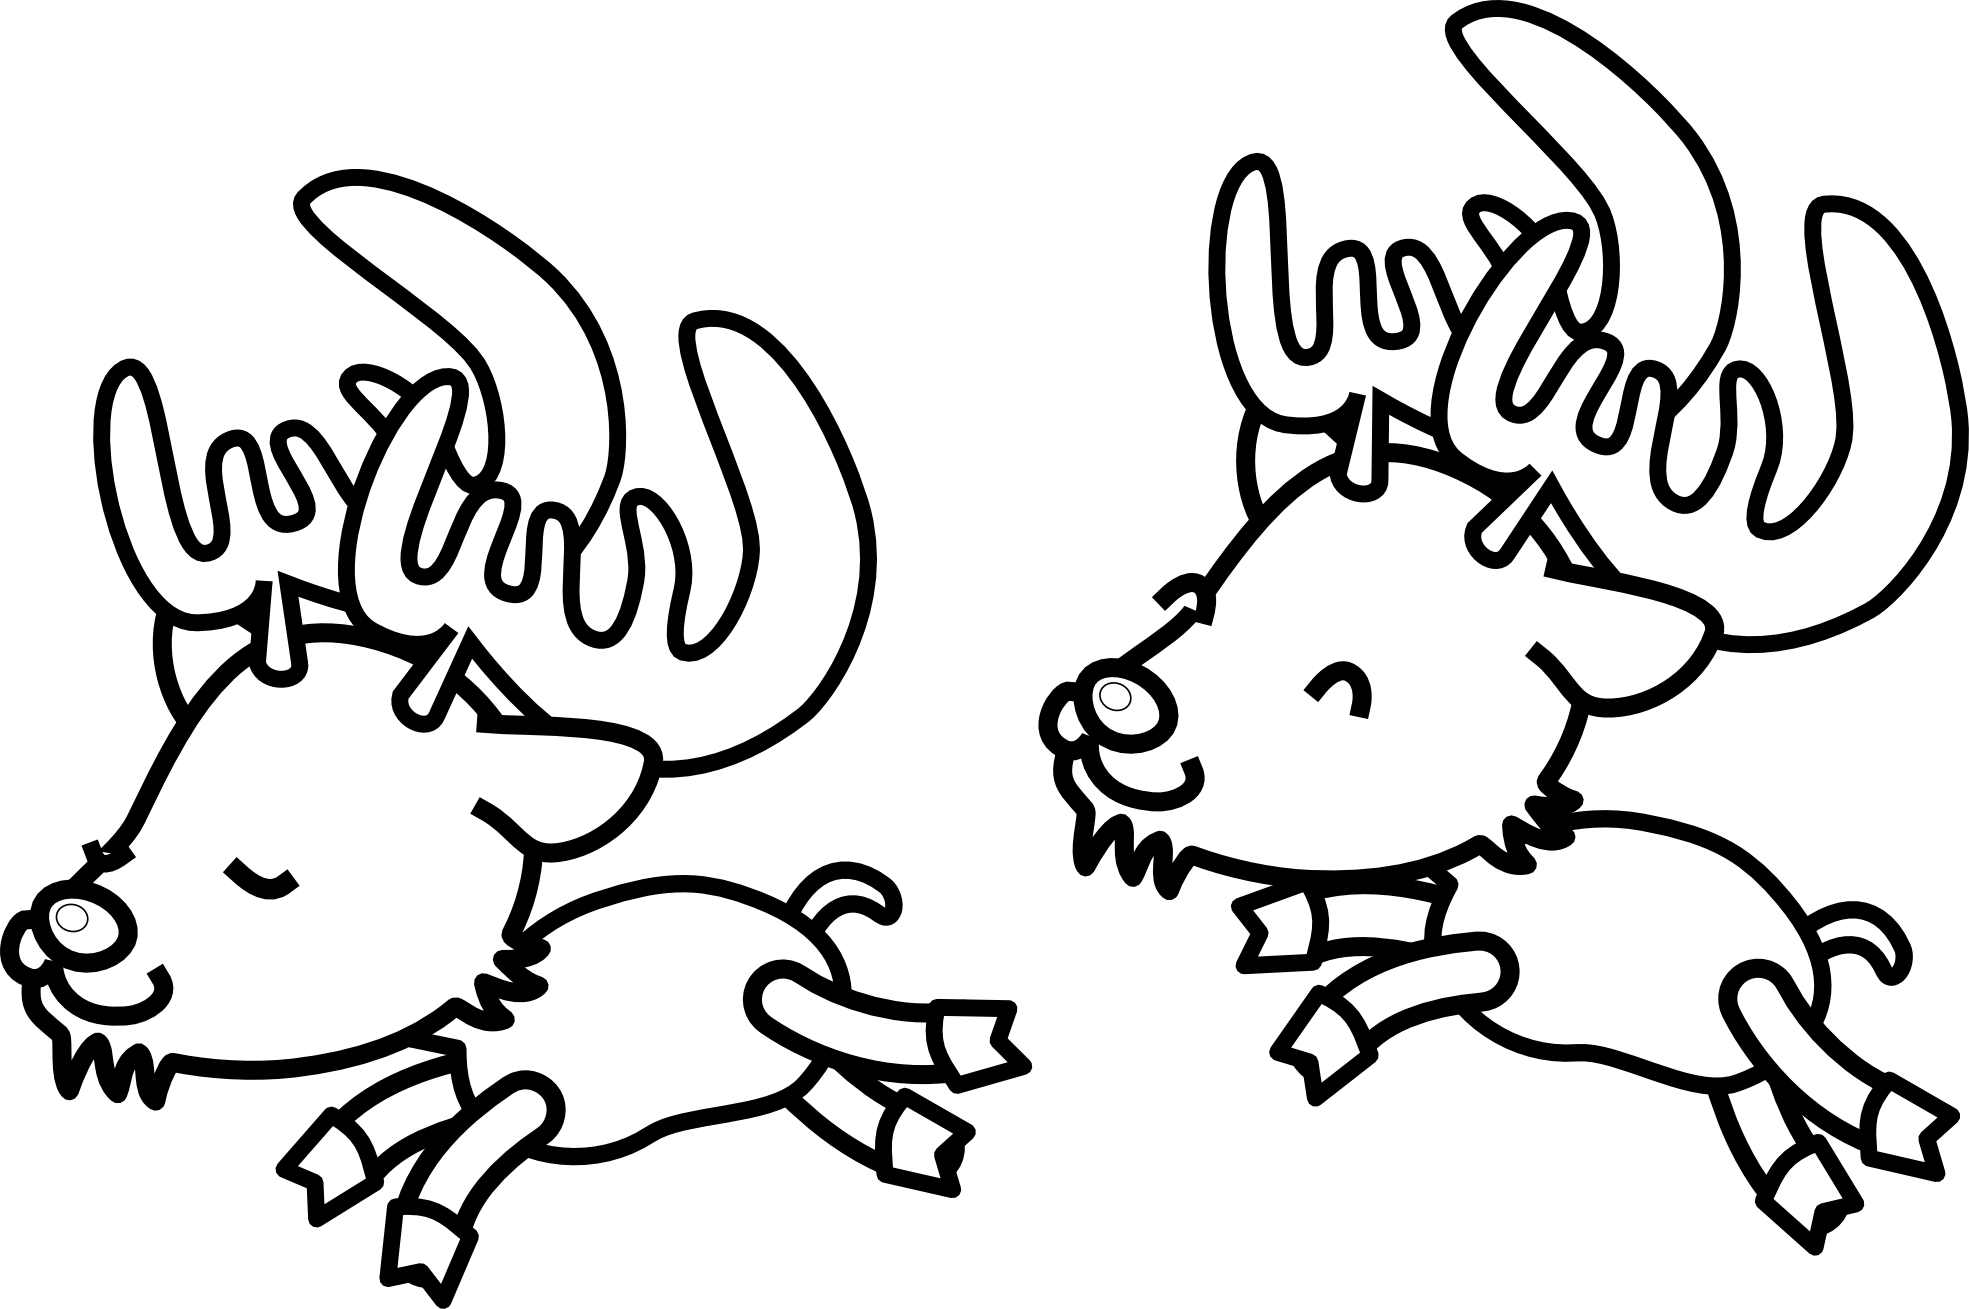 Christmas Black And White Reindeer Chris-Christmas black and white reindeer christmas clipart black-7